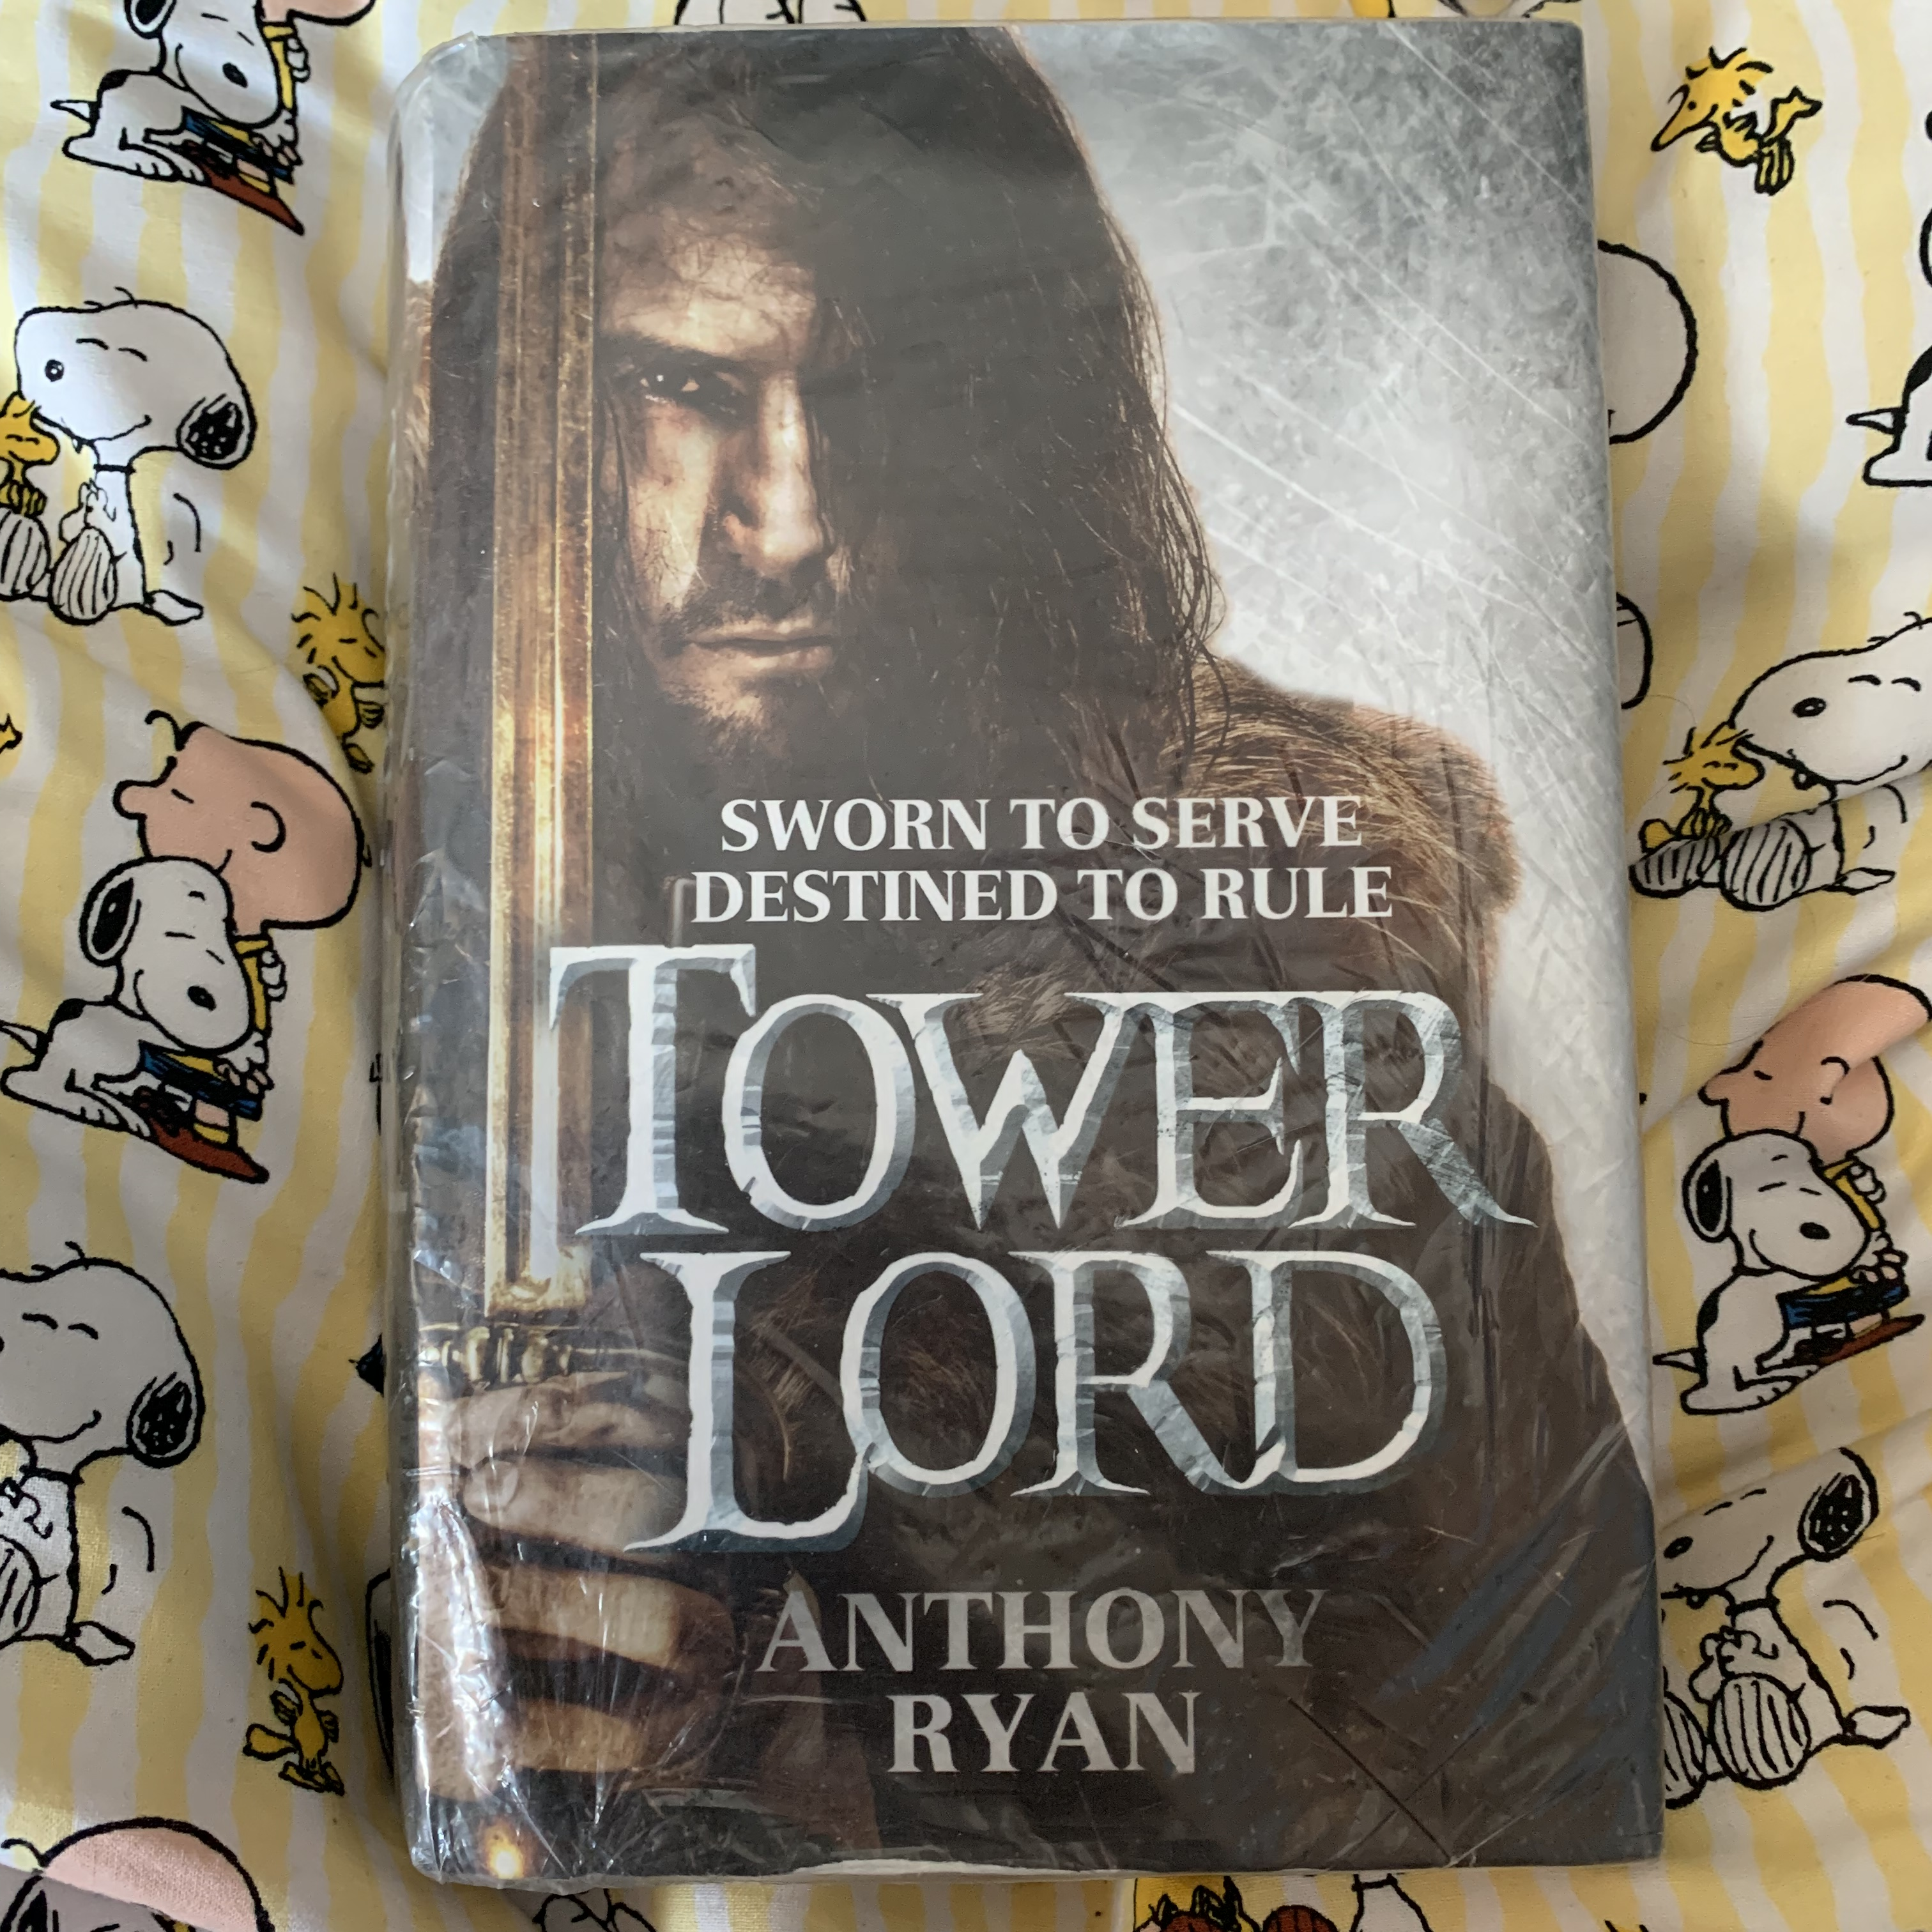 Anthony ryan tower lord pdf